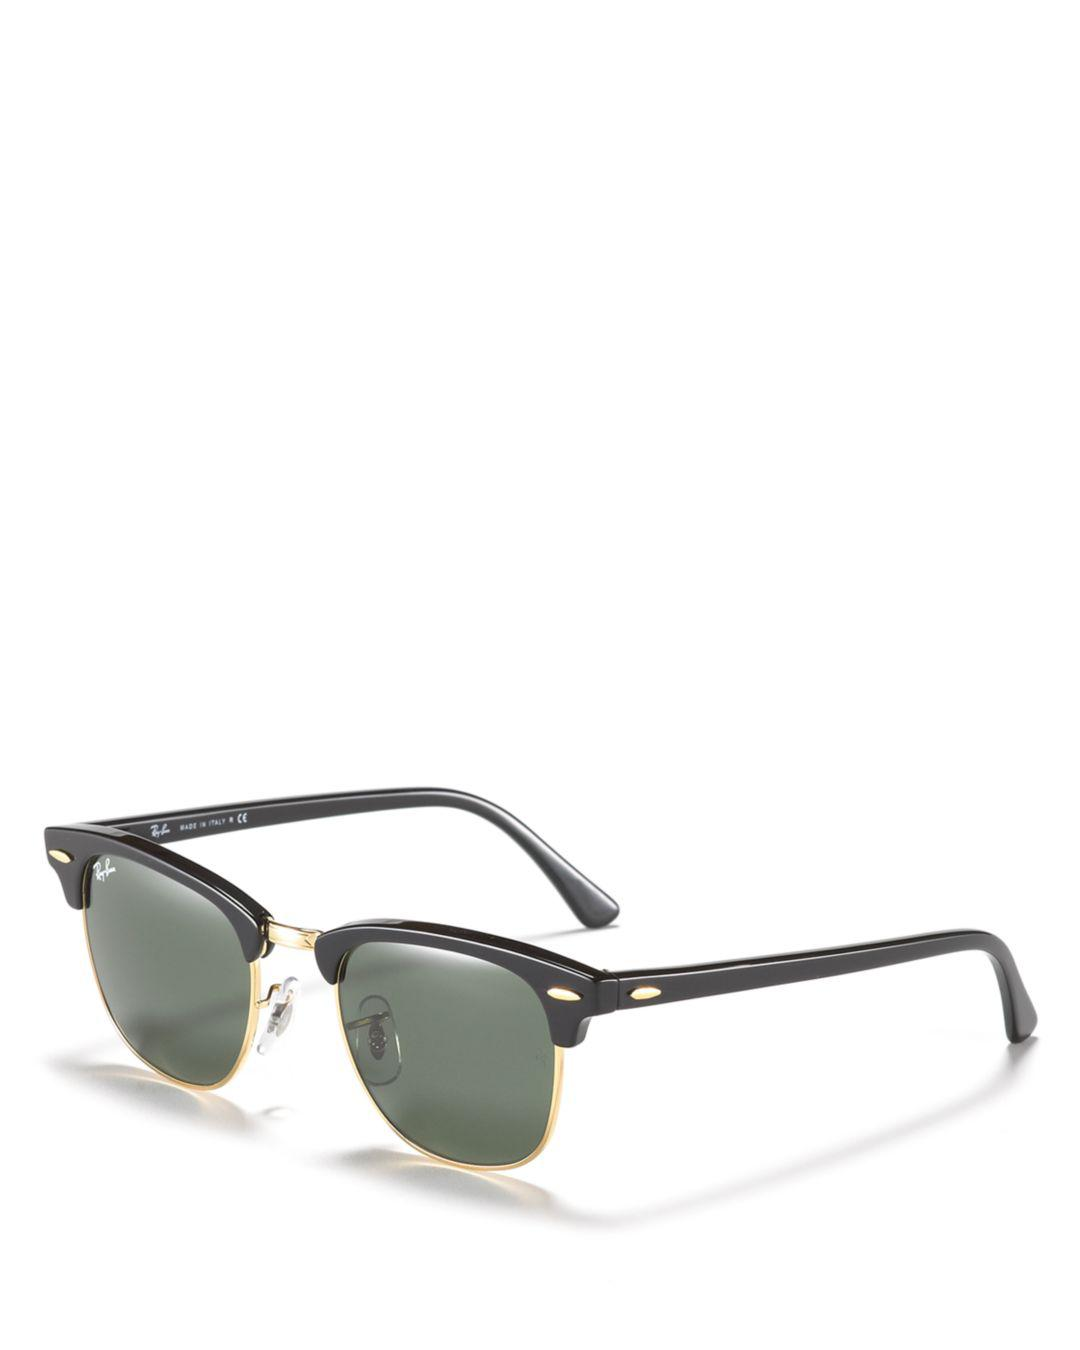 5bea22897a Lyst - Ray-Ban Classic Clubmaster Sunglasses in Brown for Men - Save 2%